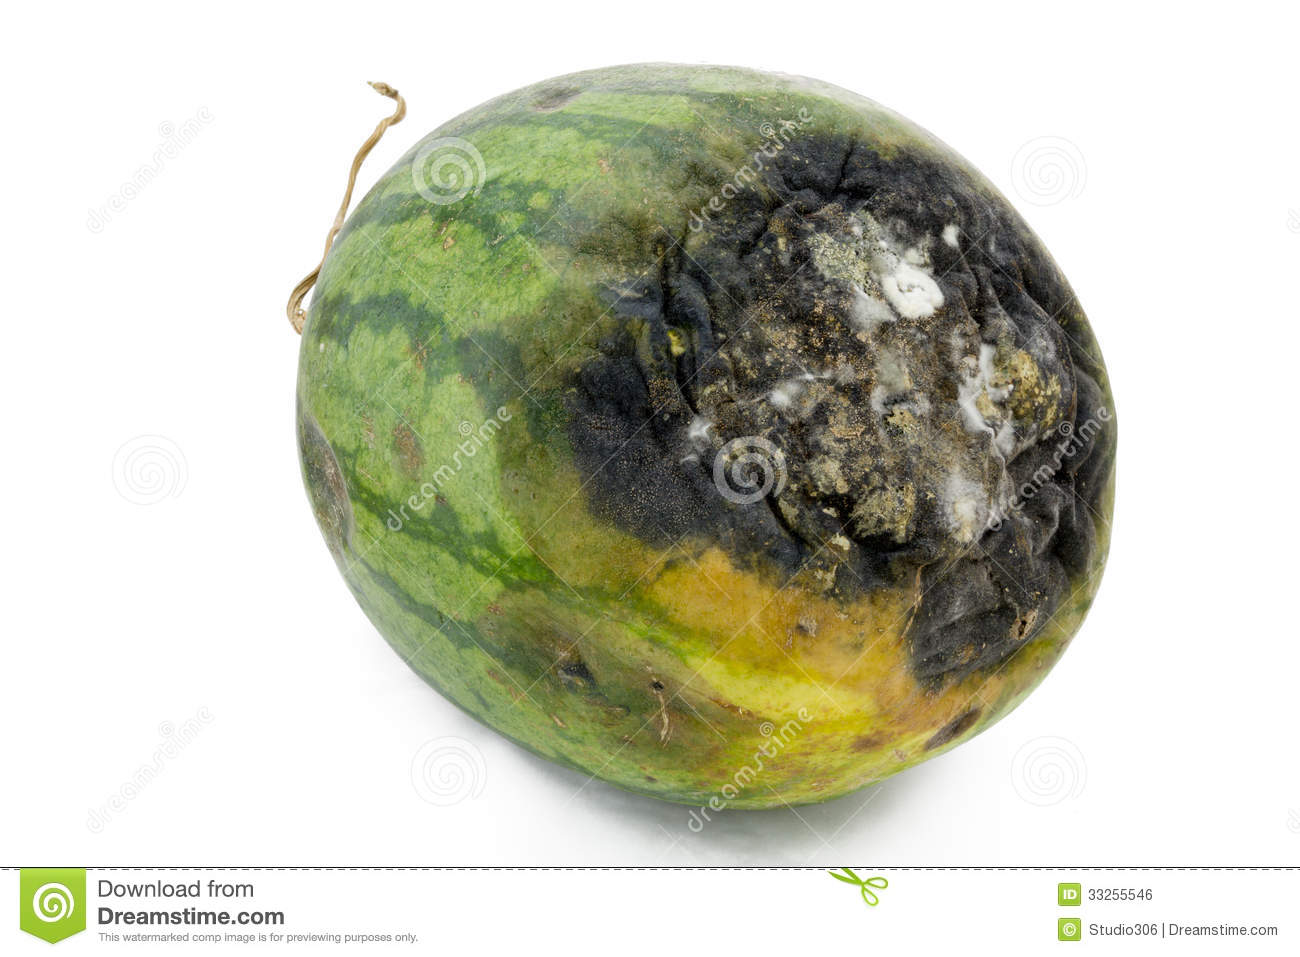 Rotten Watermelon. Royalty Free Stock Image - Image: 33255546